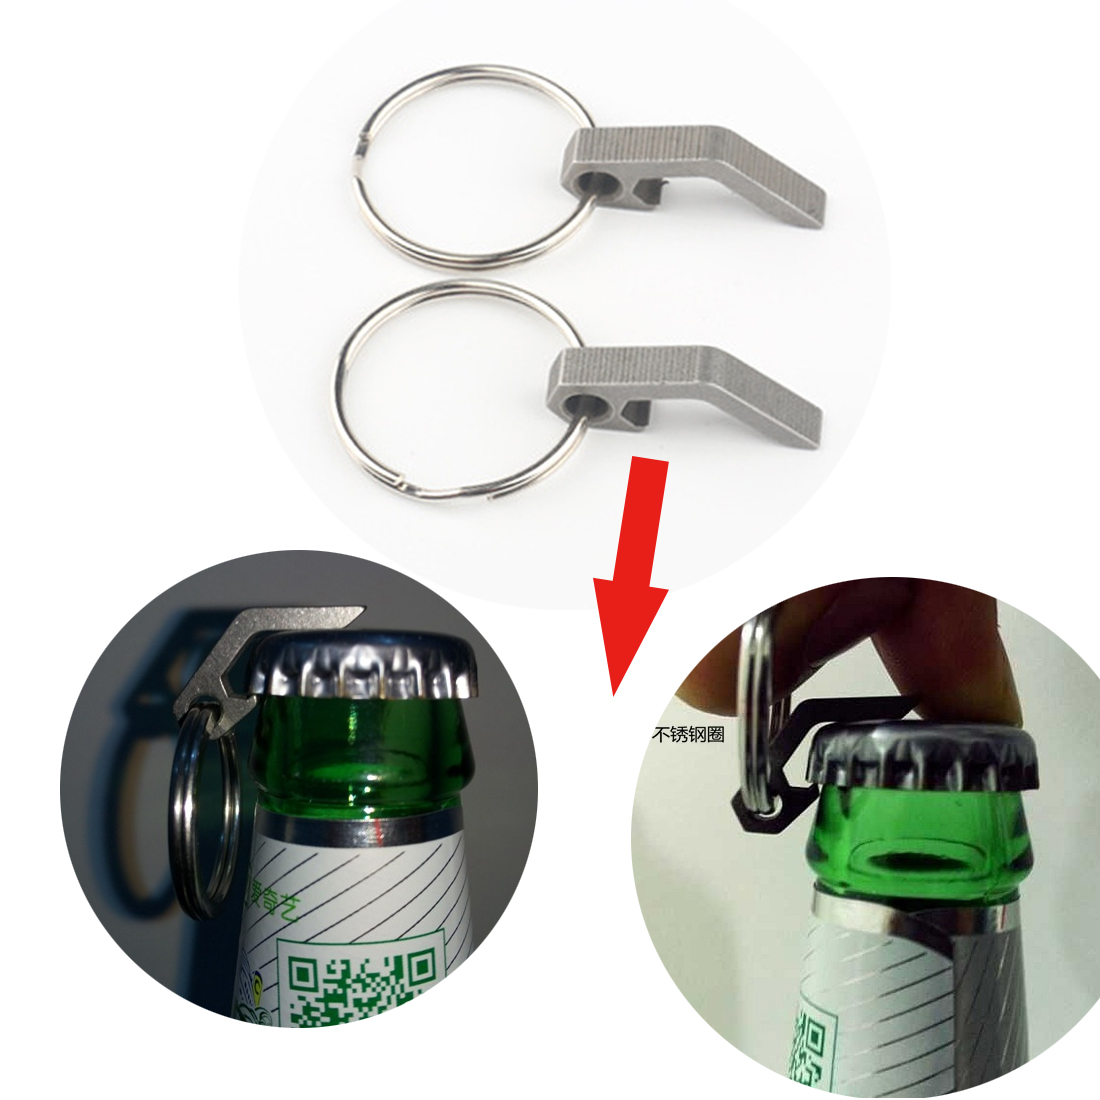 1pc EDC Gear Mini Lightweight Bottle Beer Opener Key Ring Pocket Multifunctional Tool Utility Gadget Outdoor Camp Hike